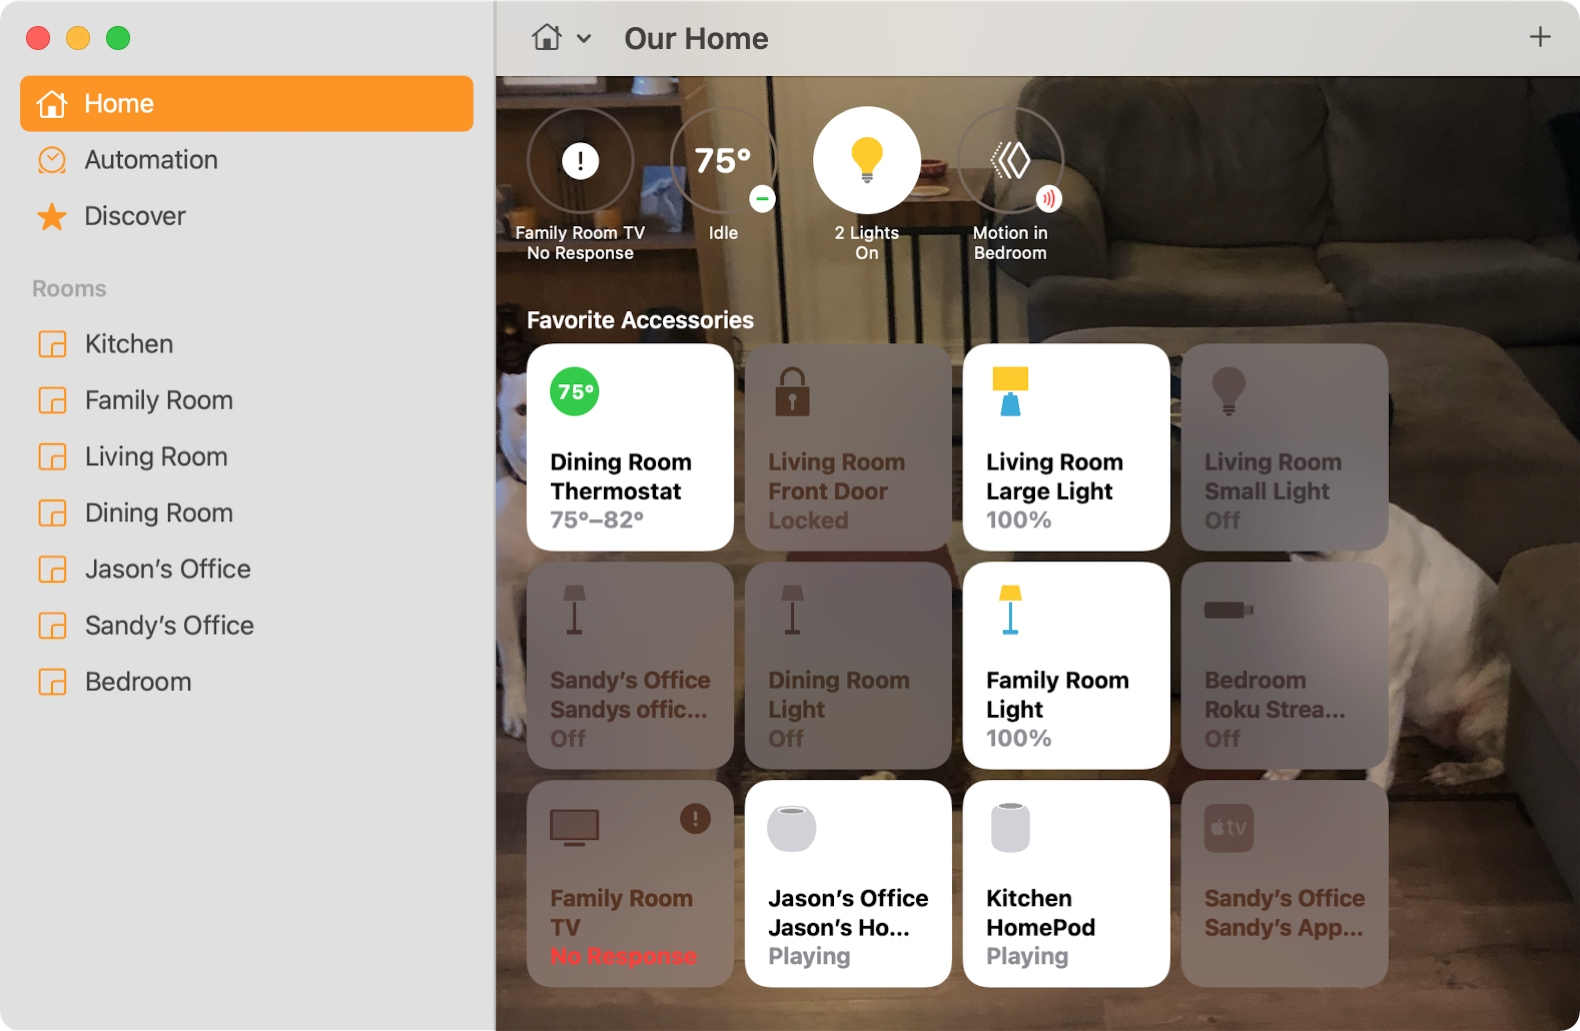 Home Section of the Home app on Mac